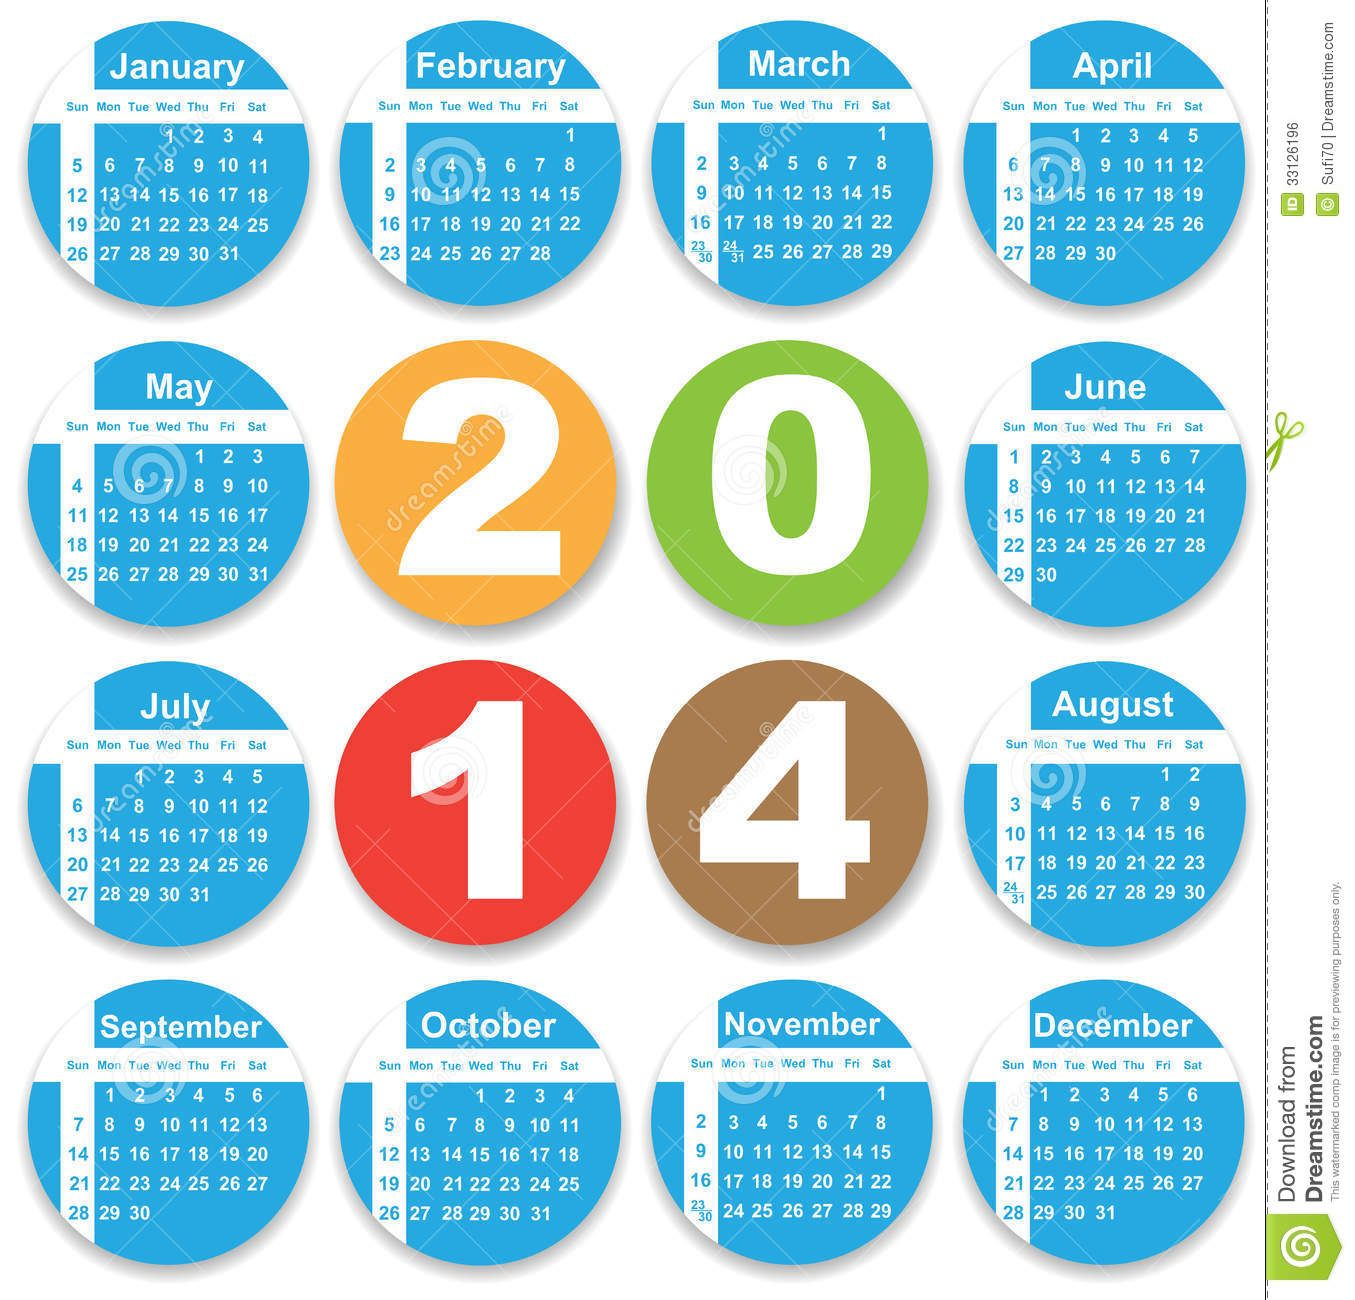 Annual Calendar Design For 2014 Royalty Free Stock Image - Image .